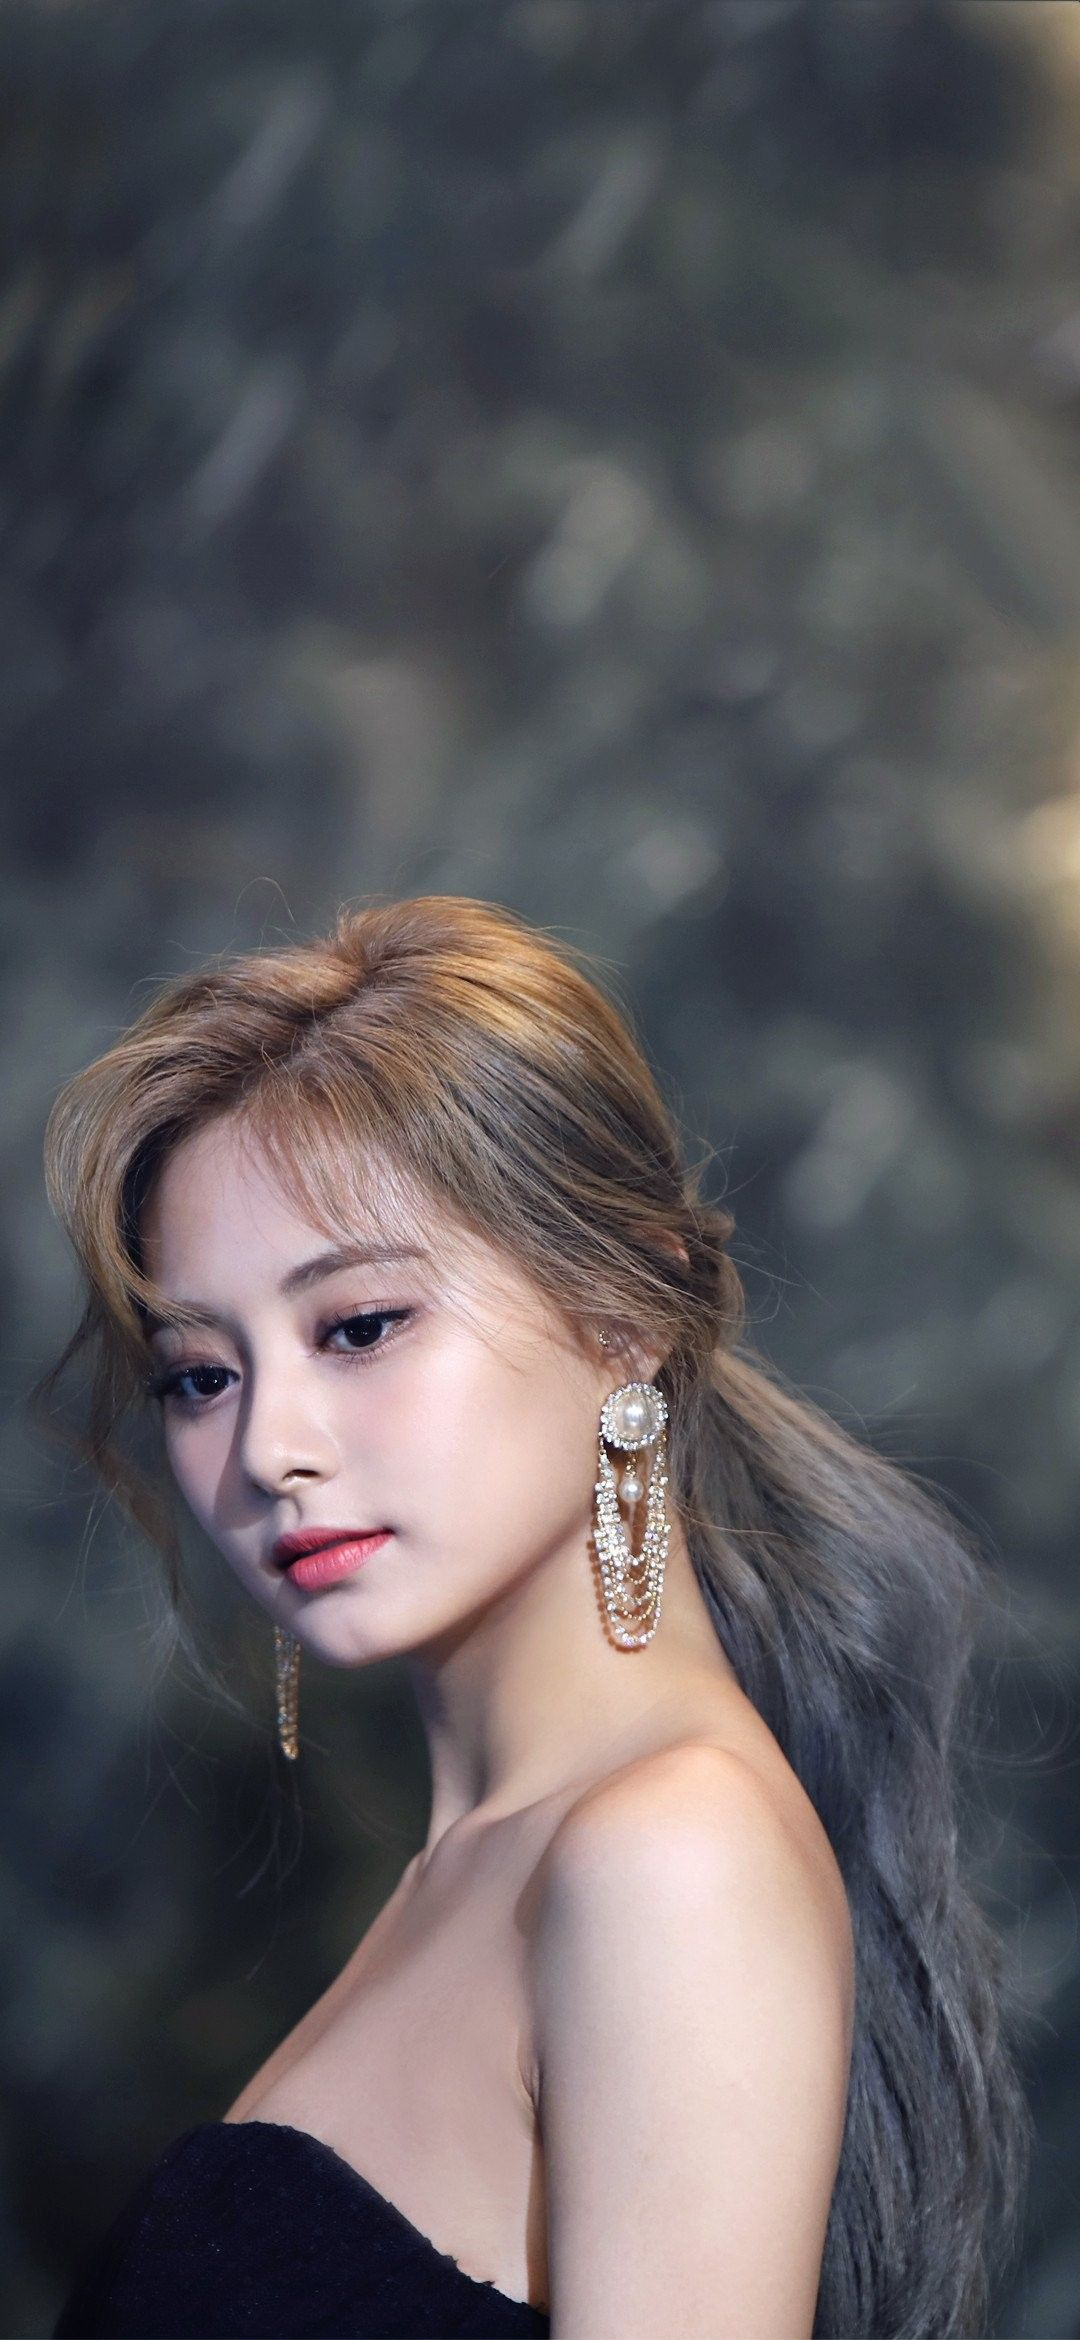 ✨WALLPAPER✨ #Tzuyu #Twice